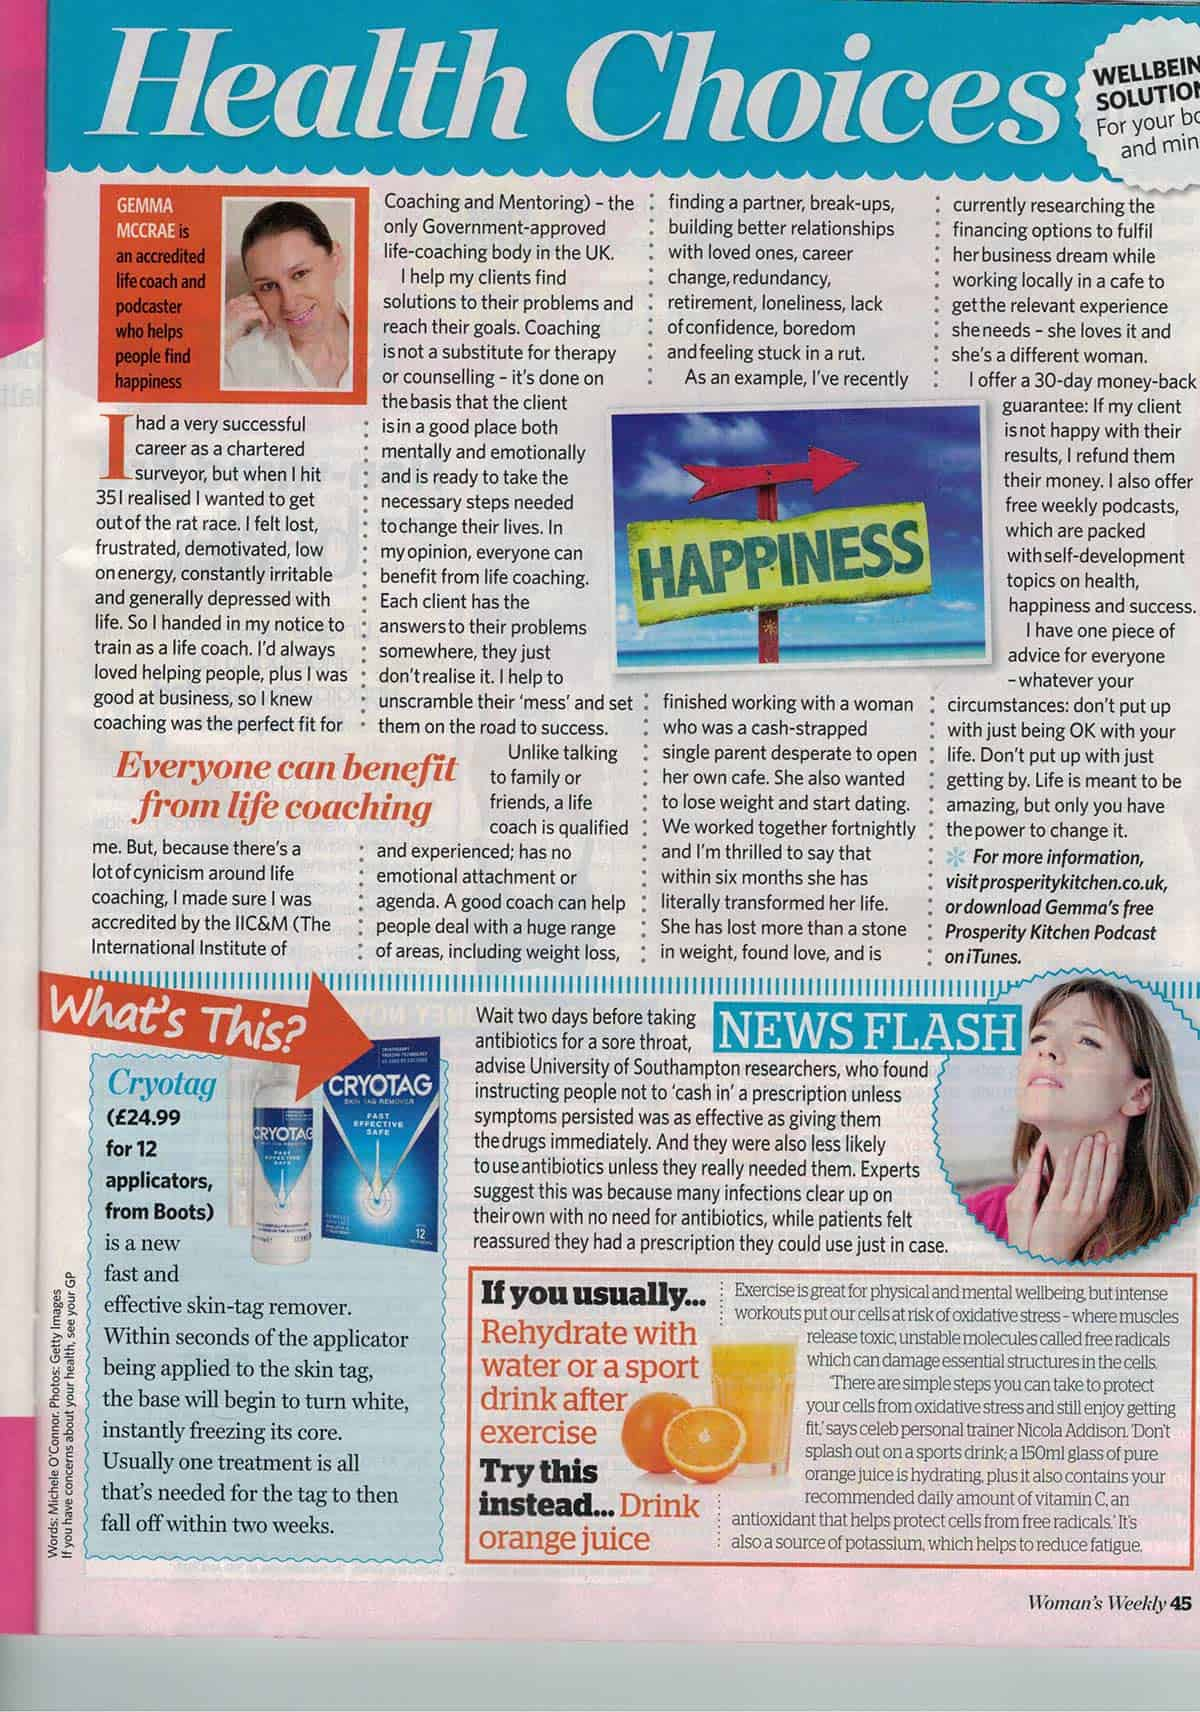 As mentioned in Women's Weekly